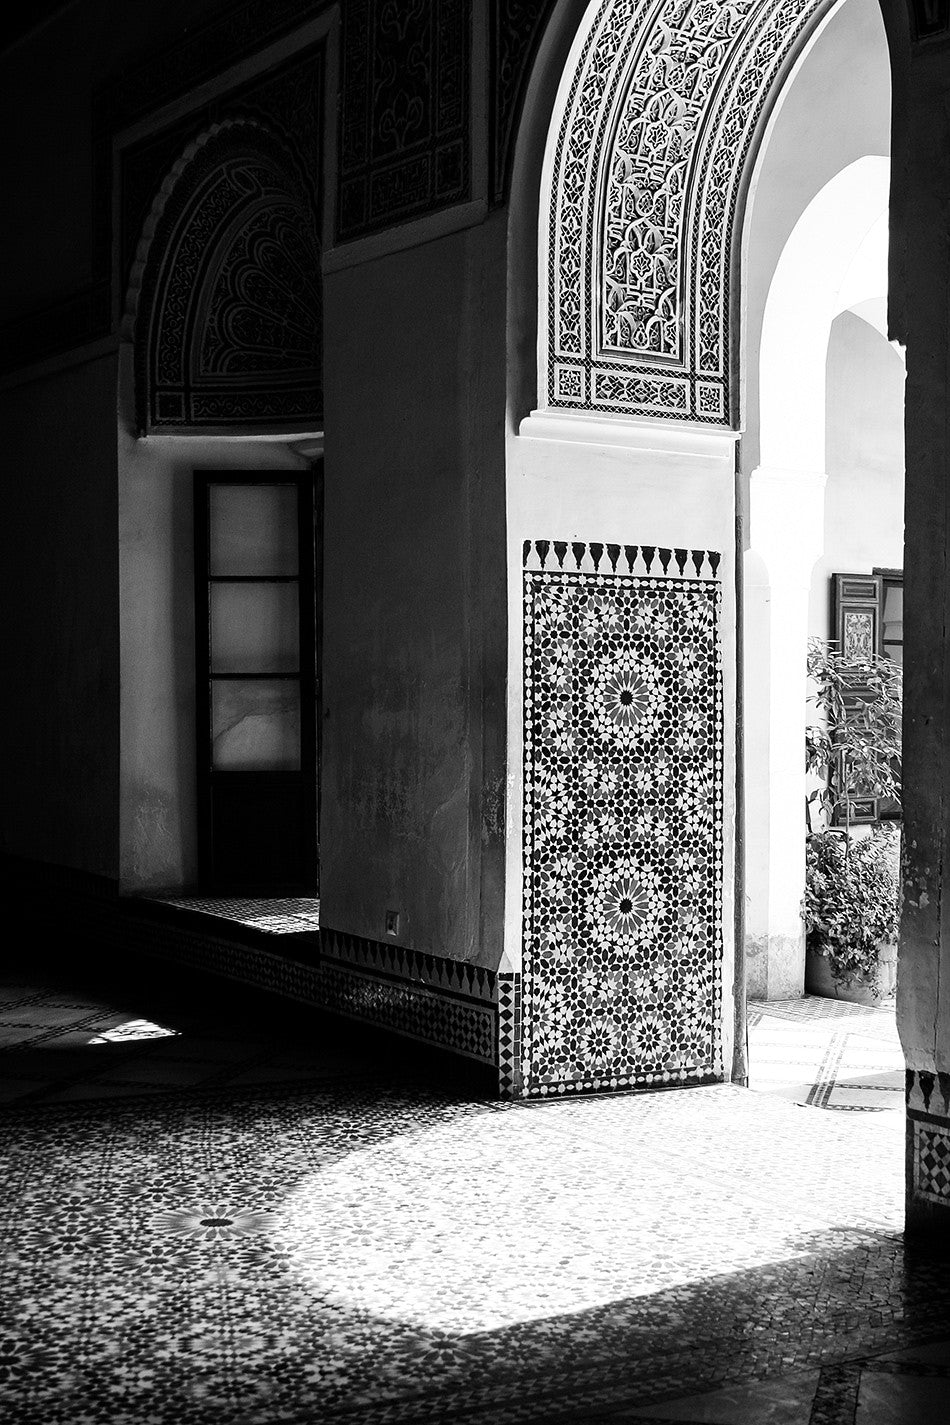 moroccan marrakech framed artwork large artwork moroccan style interior design black and white photography prints for wall